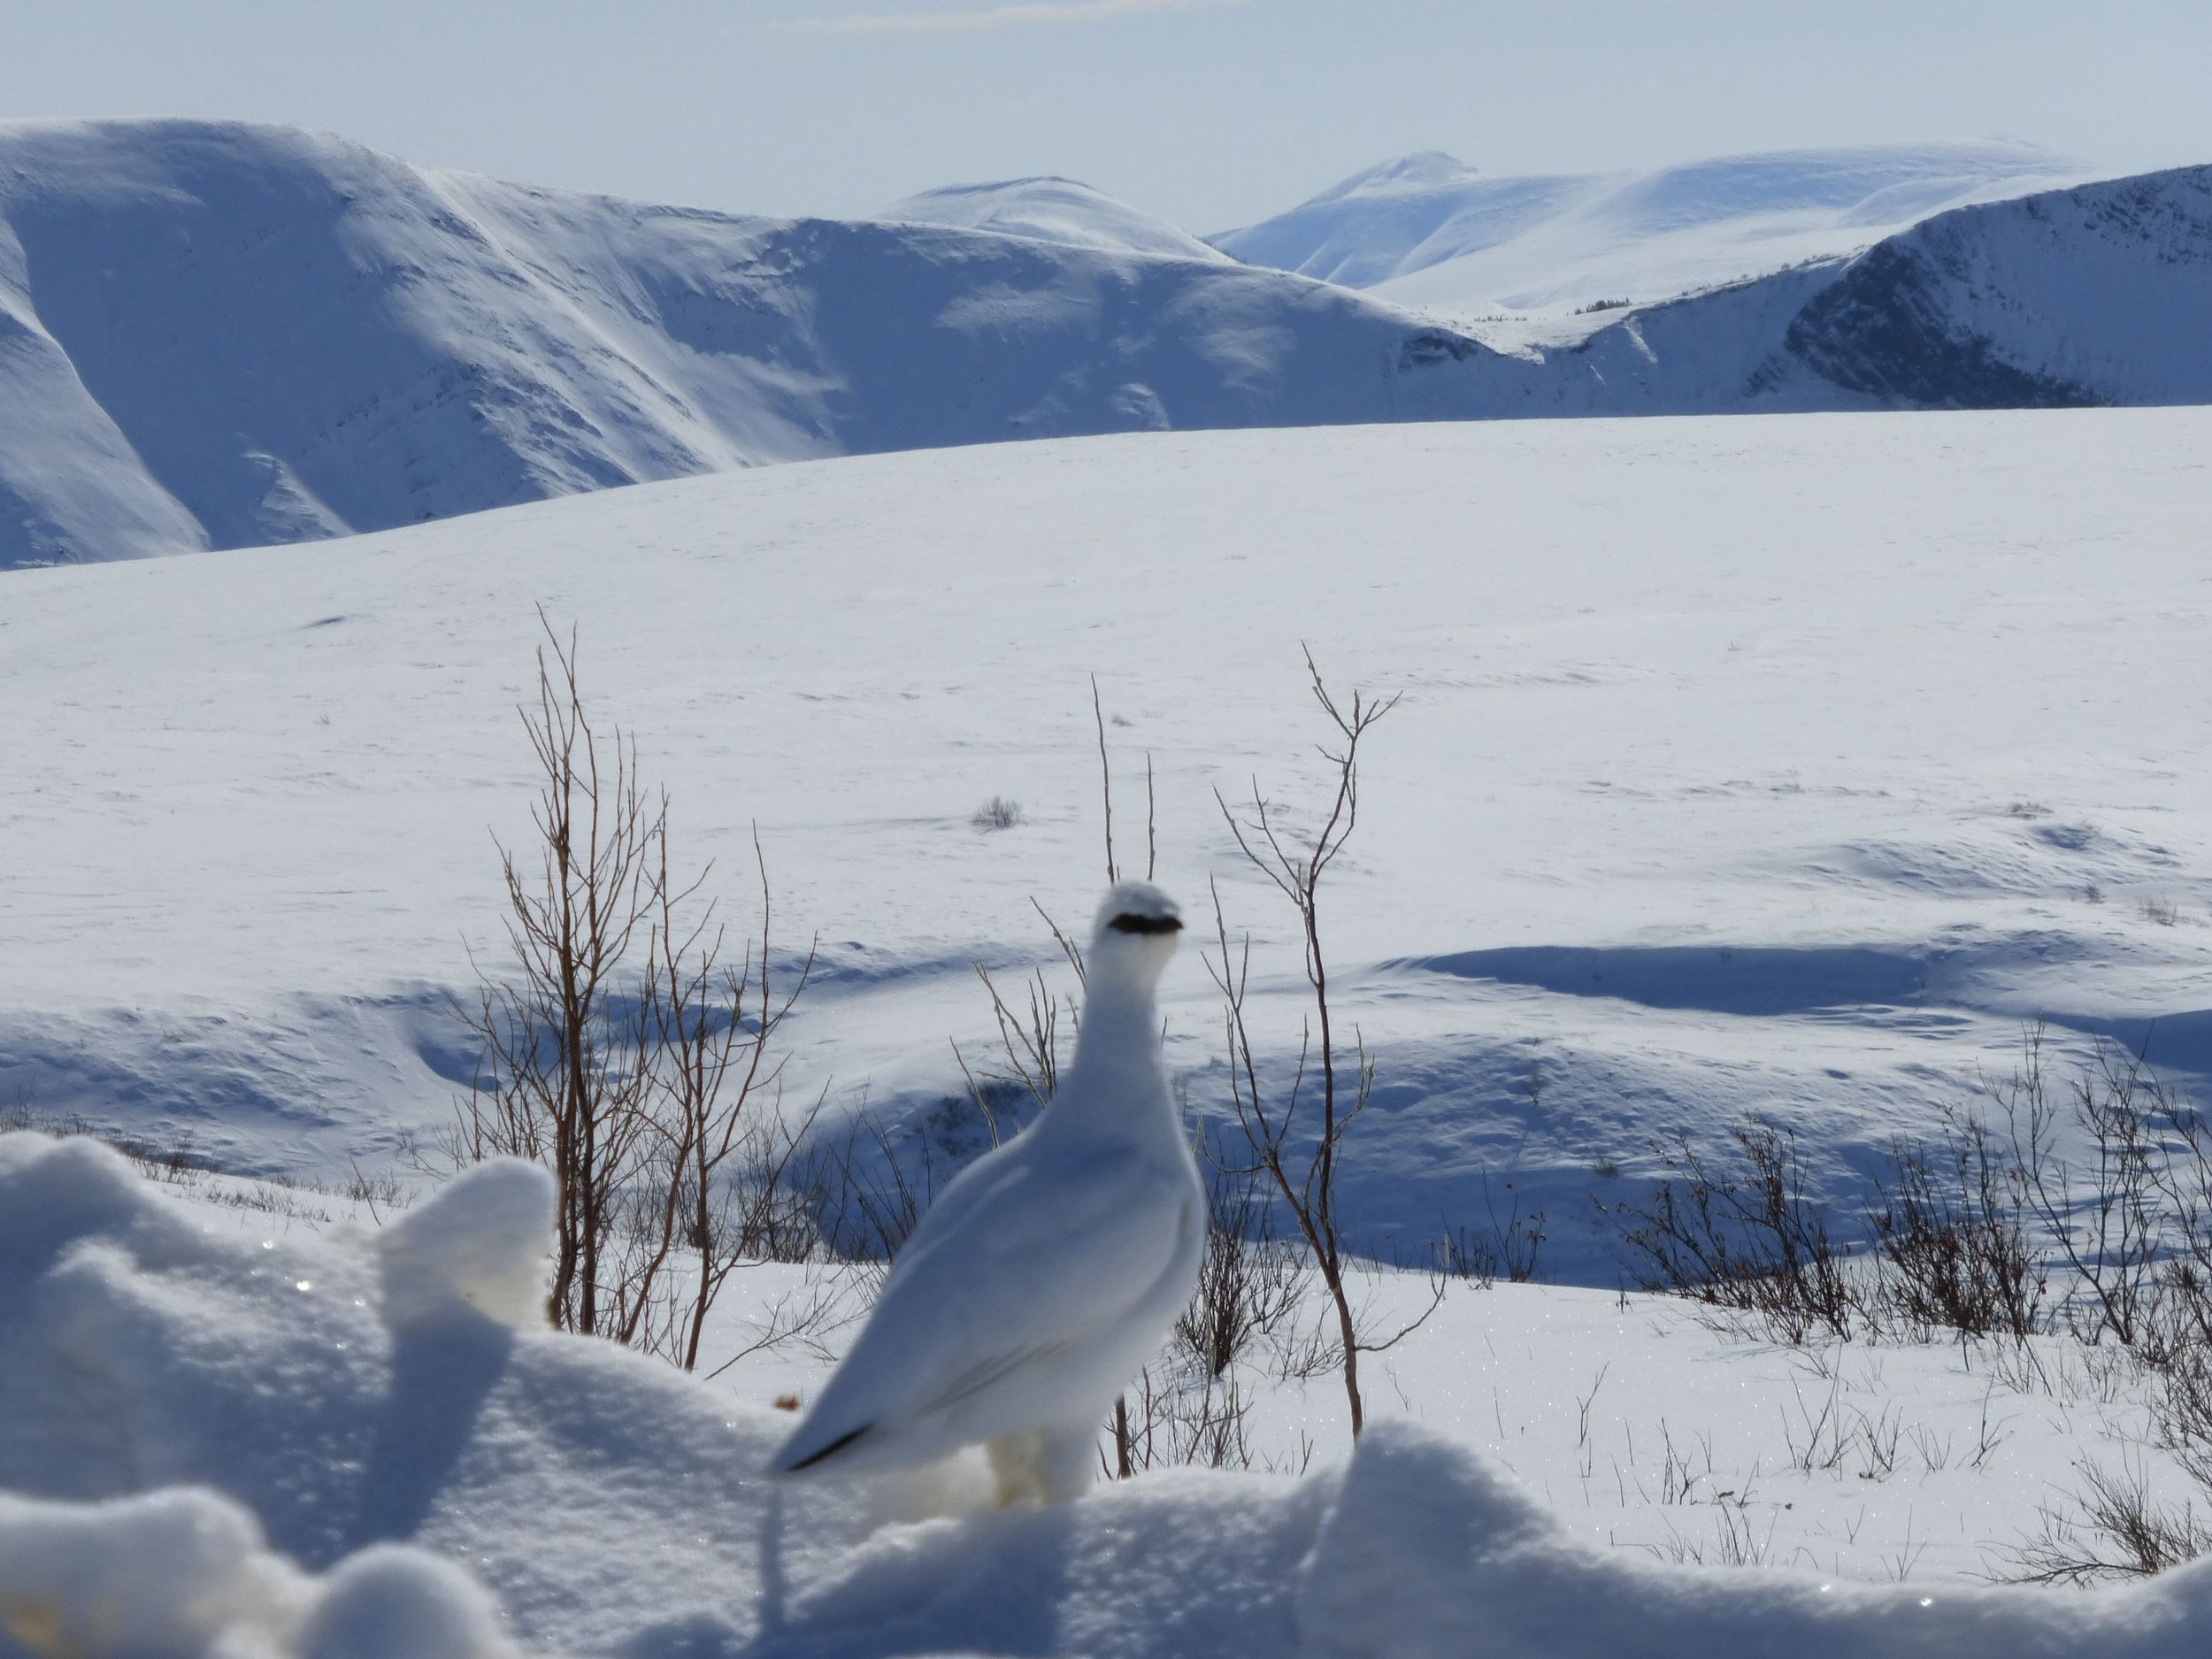 The elusive snowbird, Tarmigan